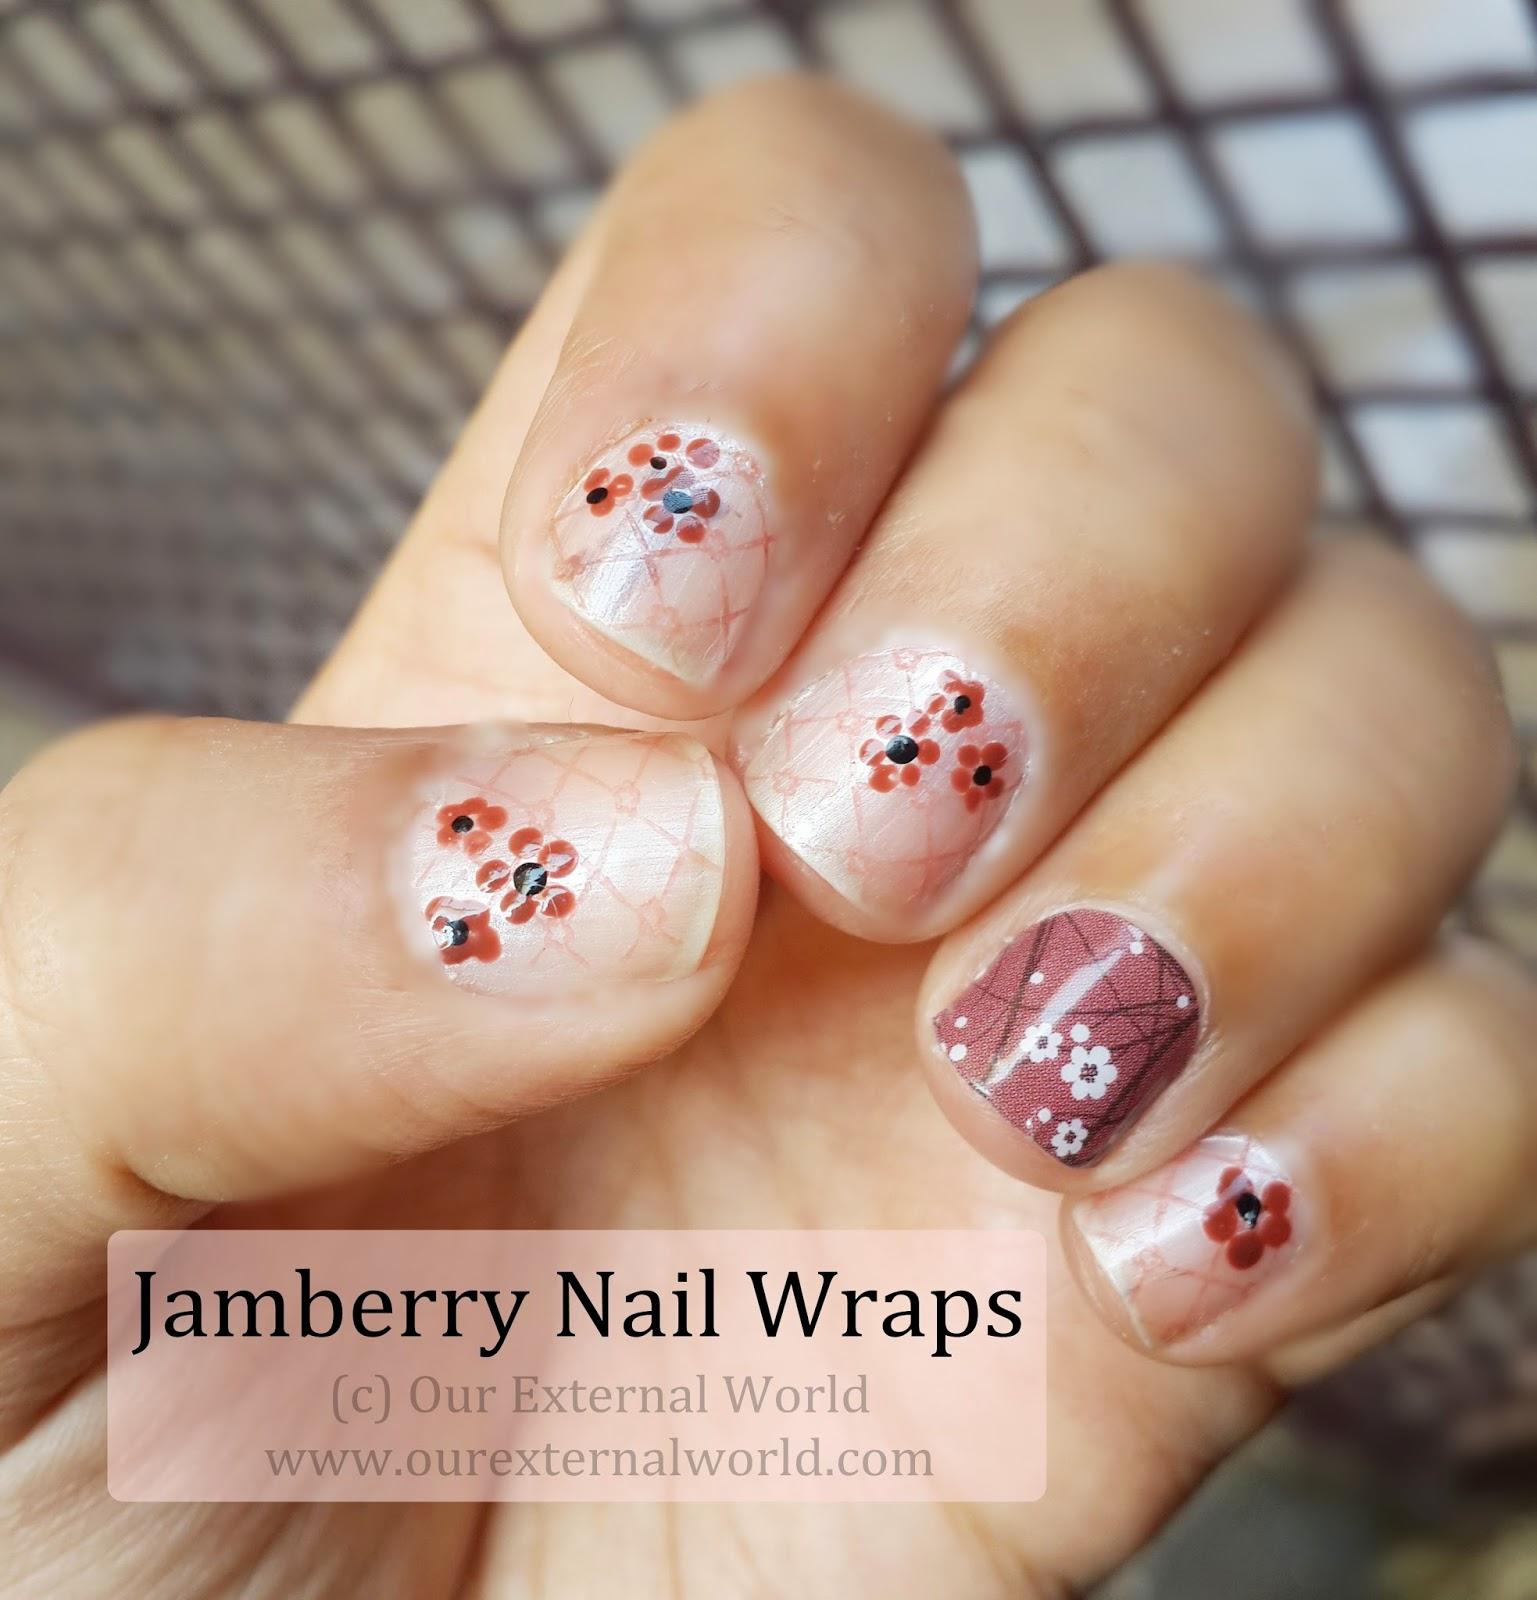 Jamberry Nail Wraps Marsala In Bloom Review & Tutorial